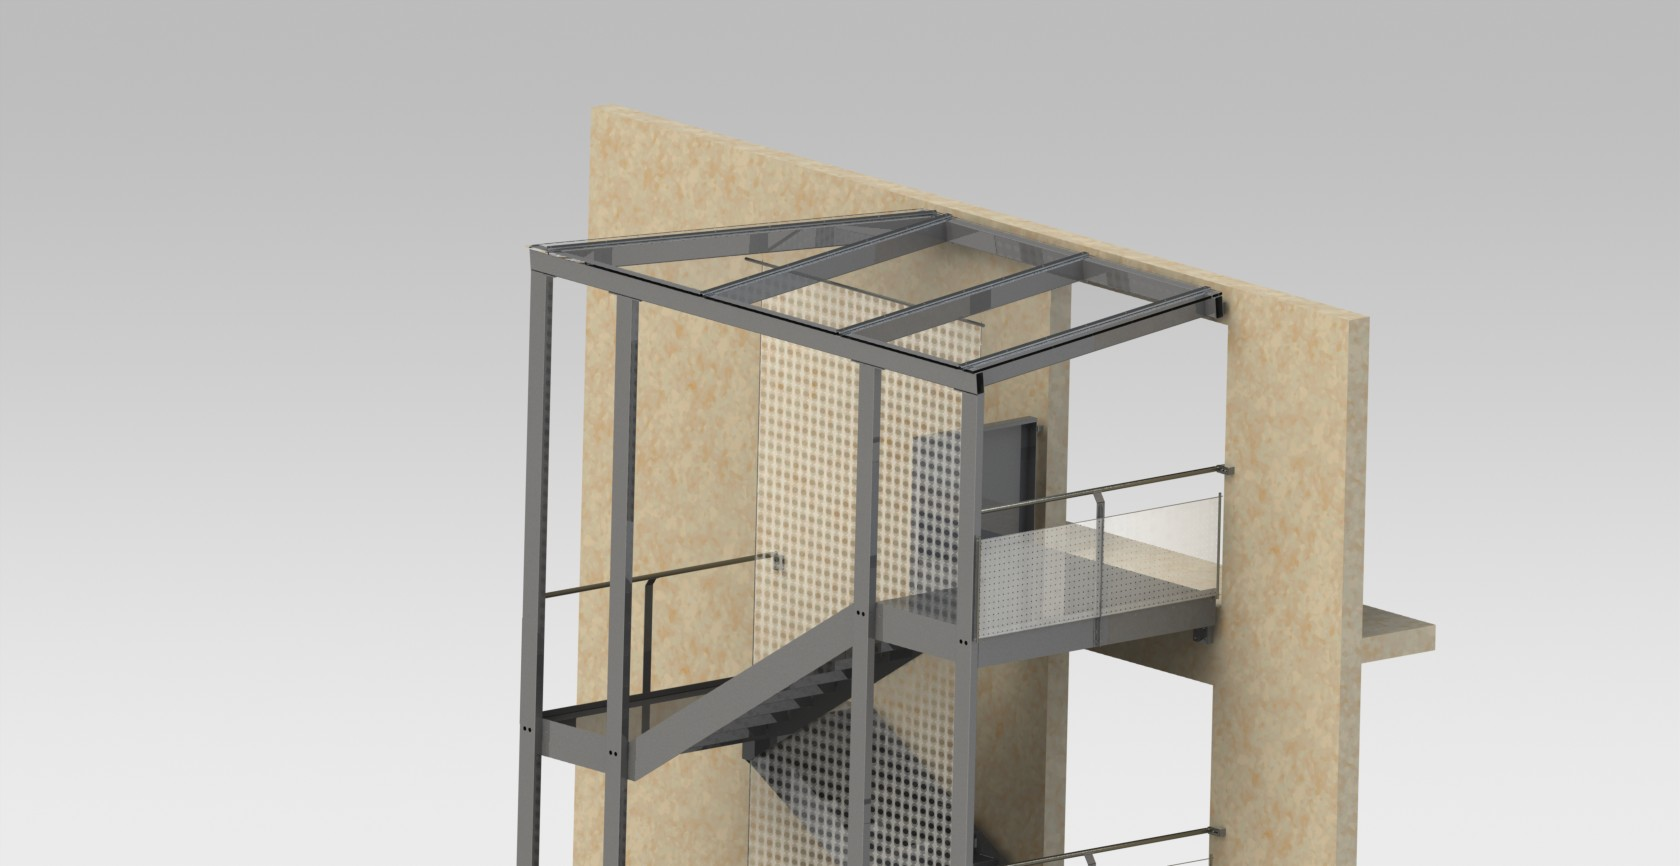 cage d escalier ext 233 rieure rdmetal bureau technique construction m 233 tallique